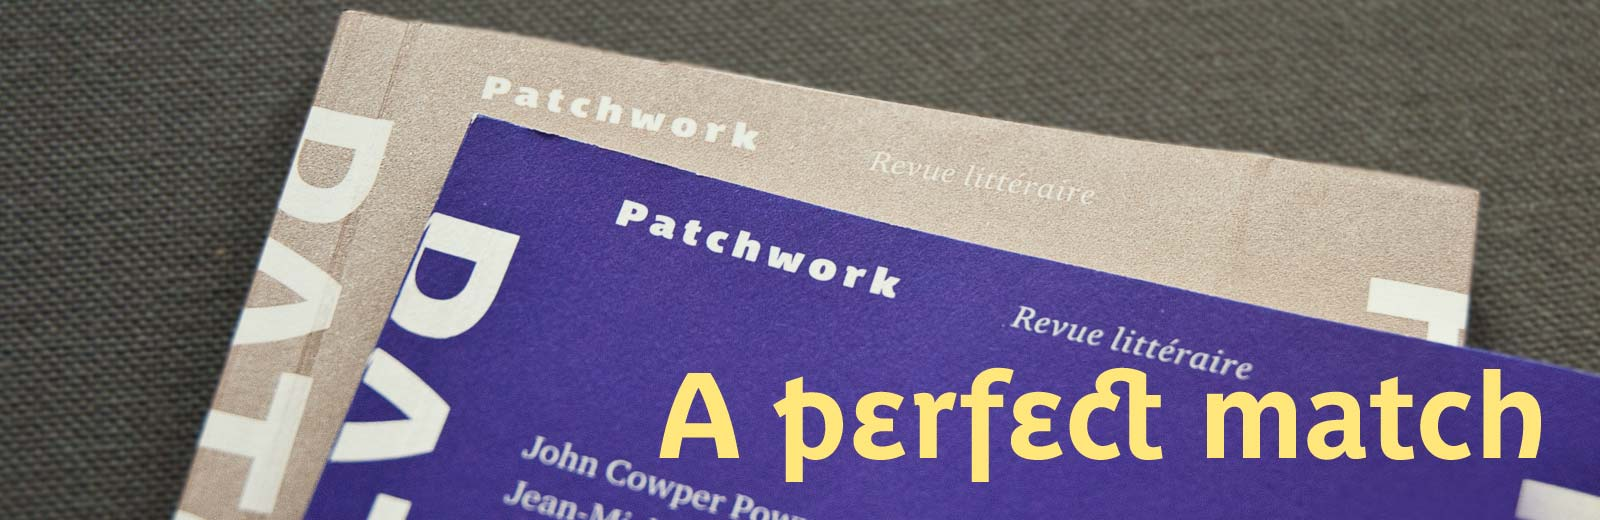 Patchwork, a literary review set in Parisine Plus